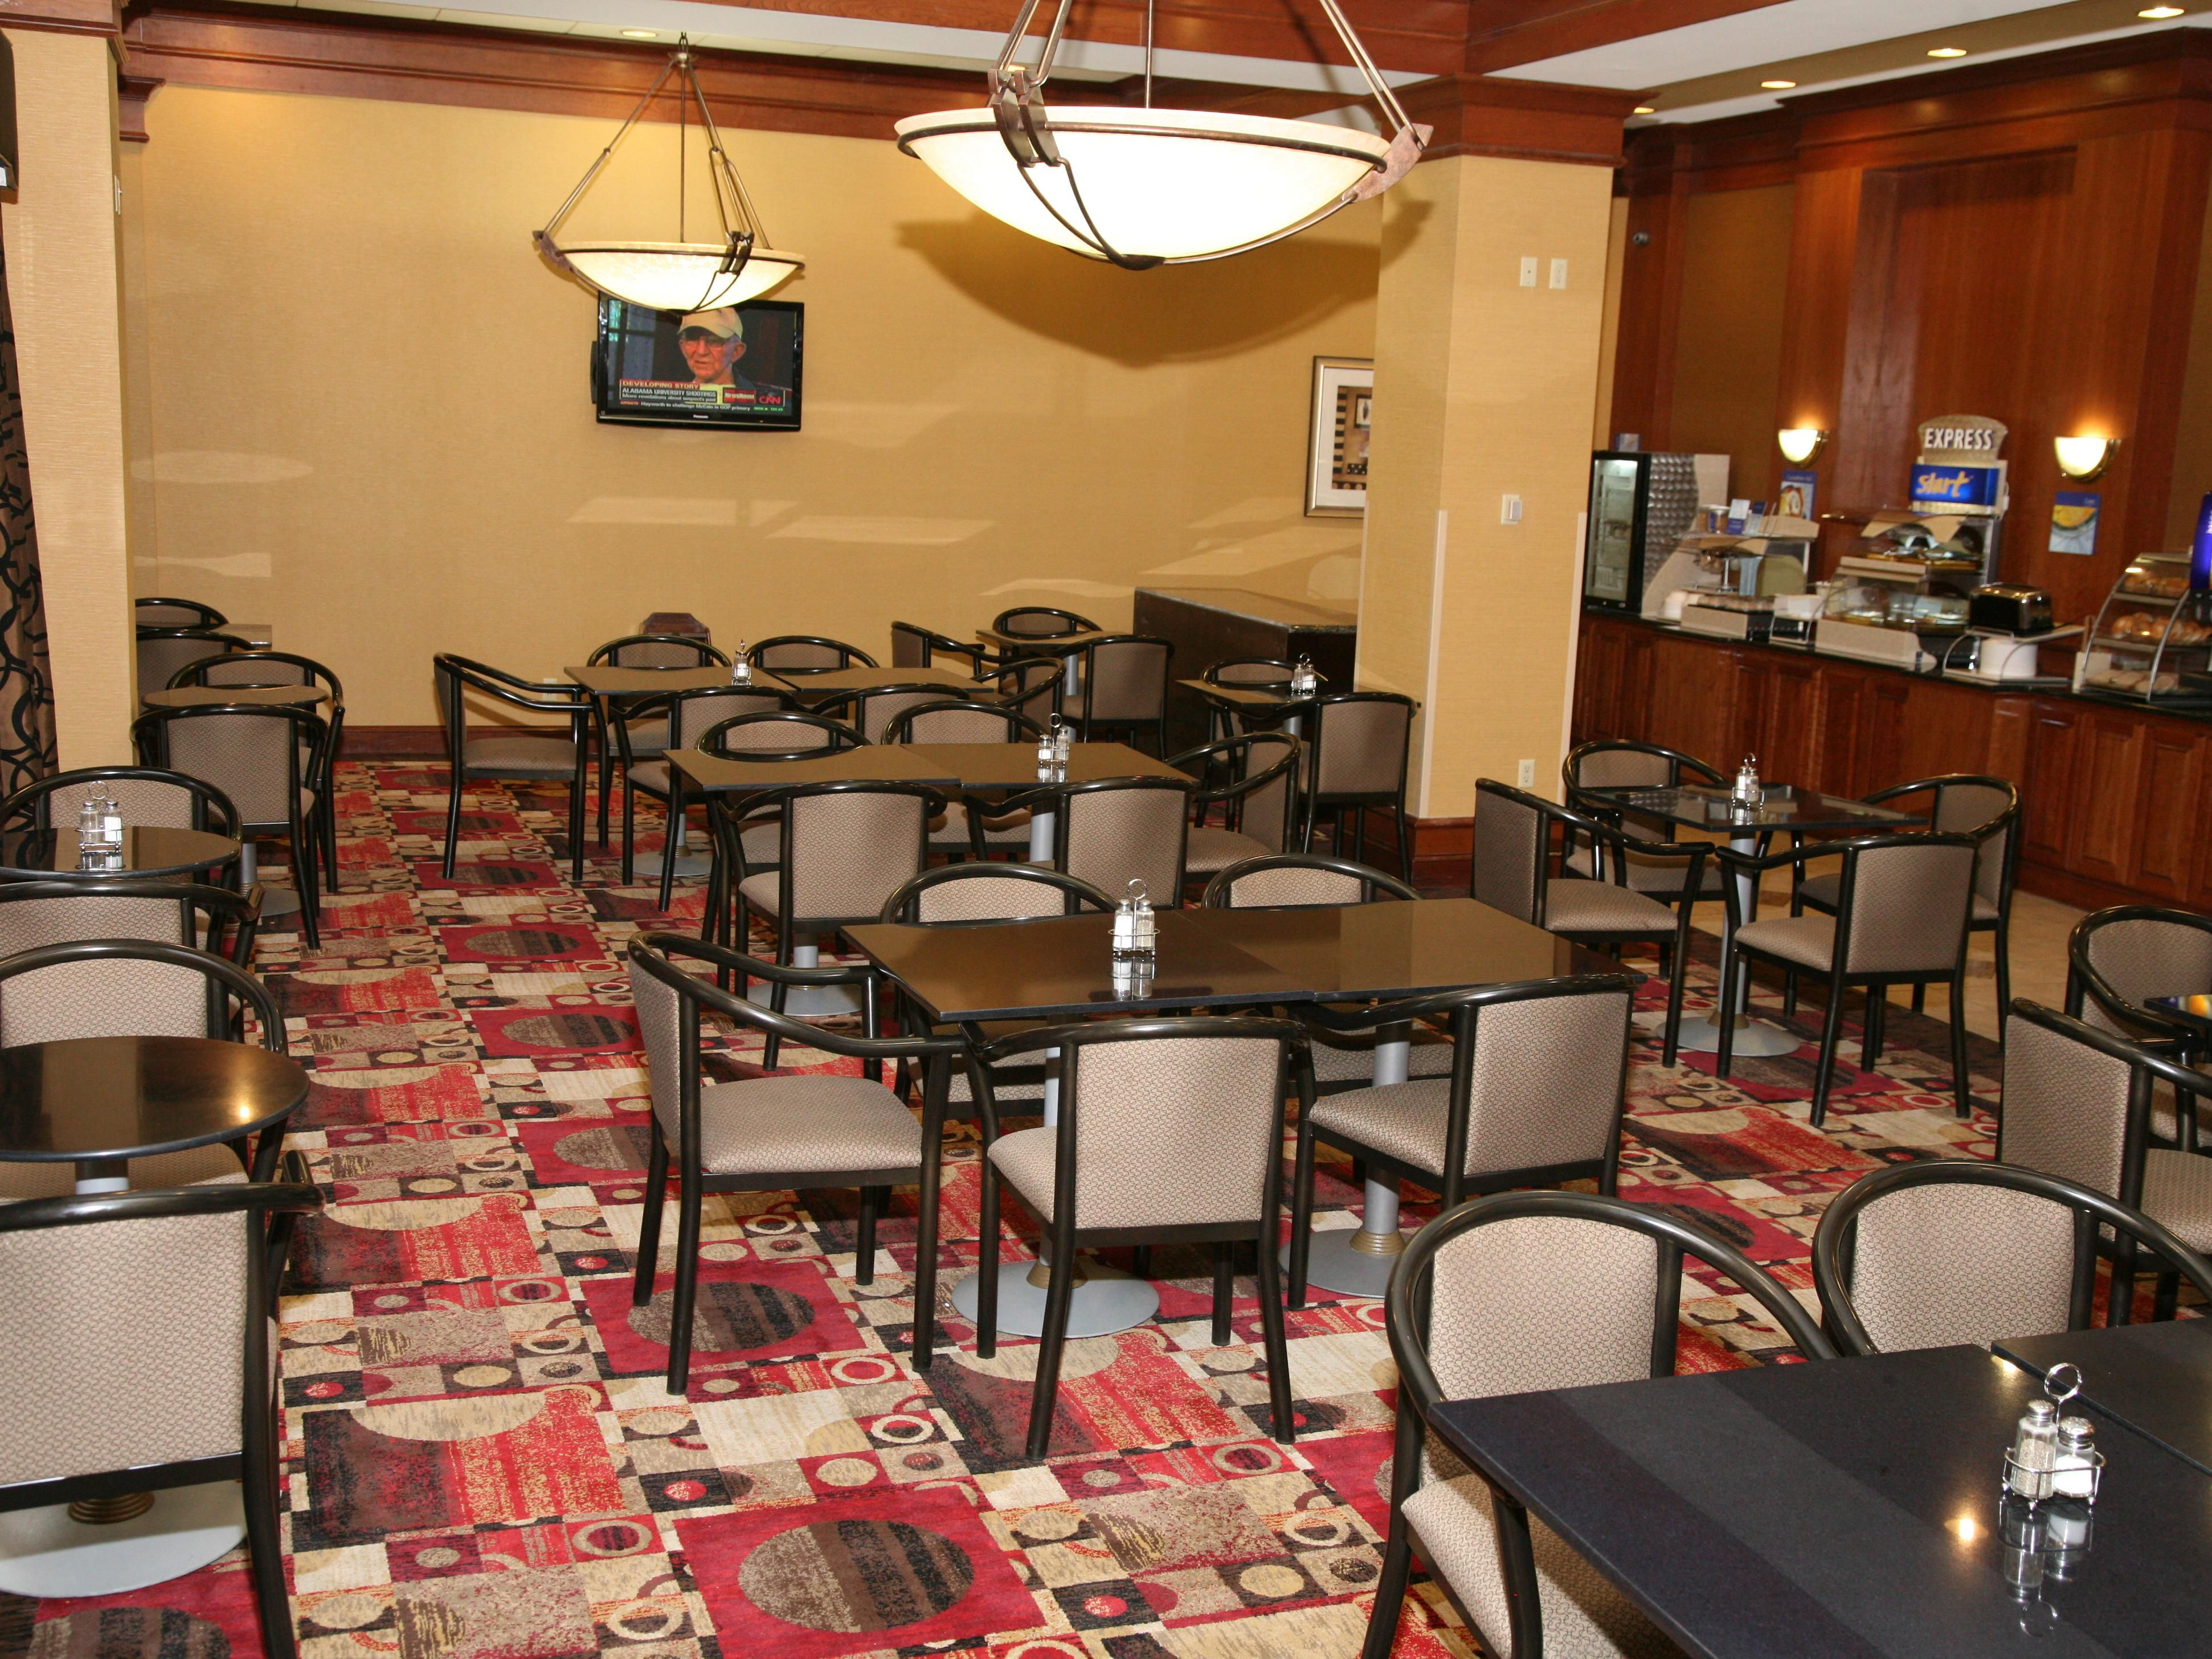 Plenty of Seating is Available for Guests during Breakfast